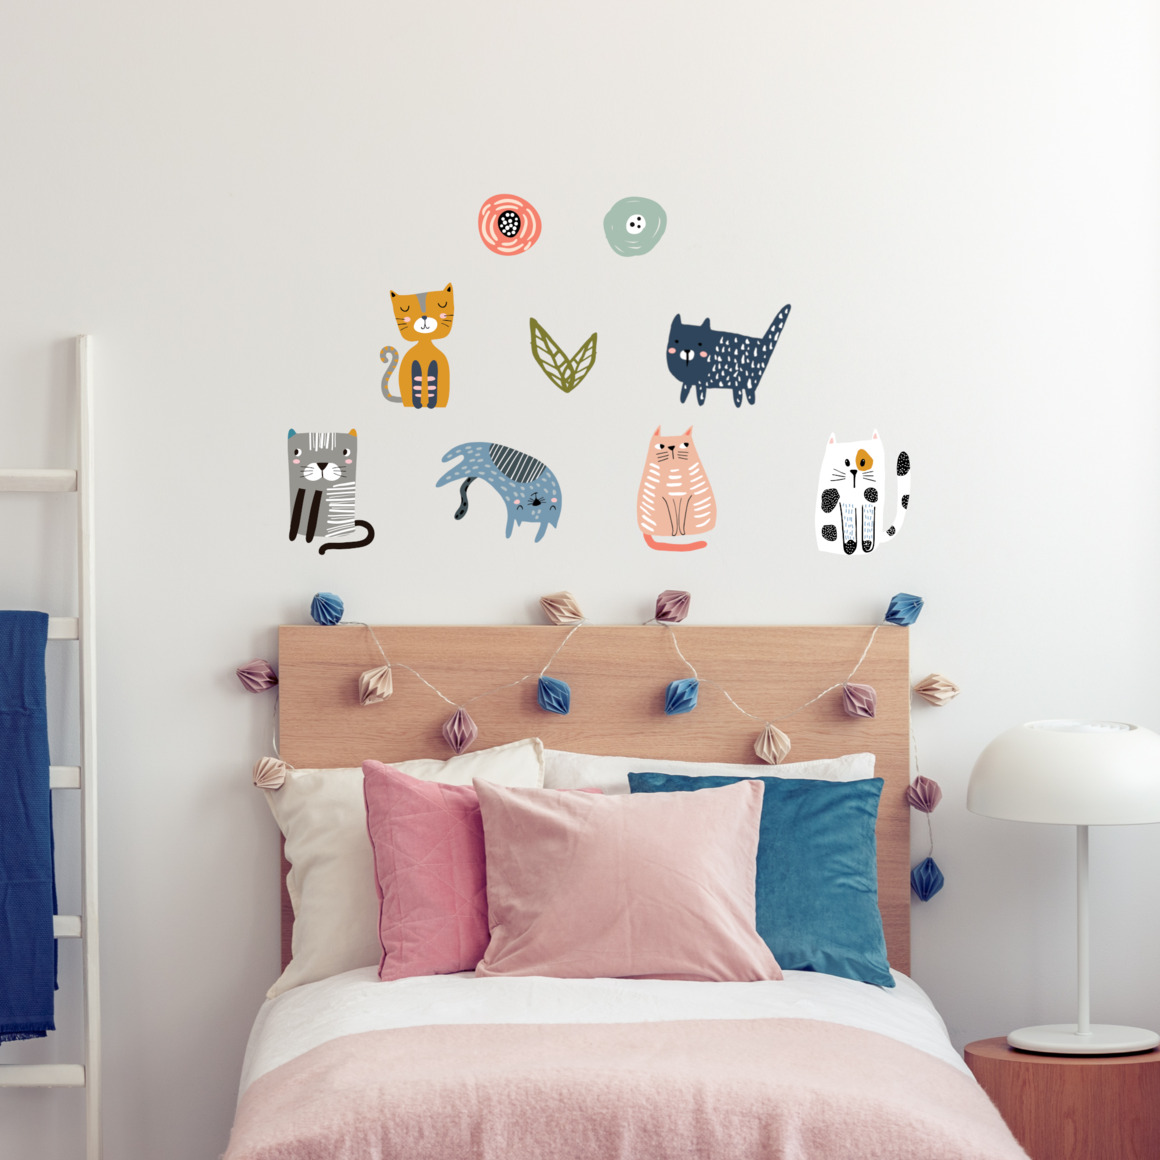 Fabric wall decals - Cats   Trada Marketplace